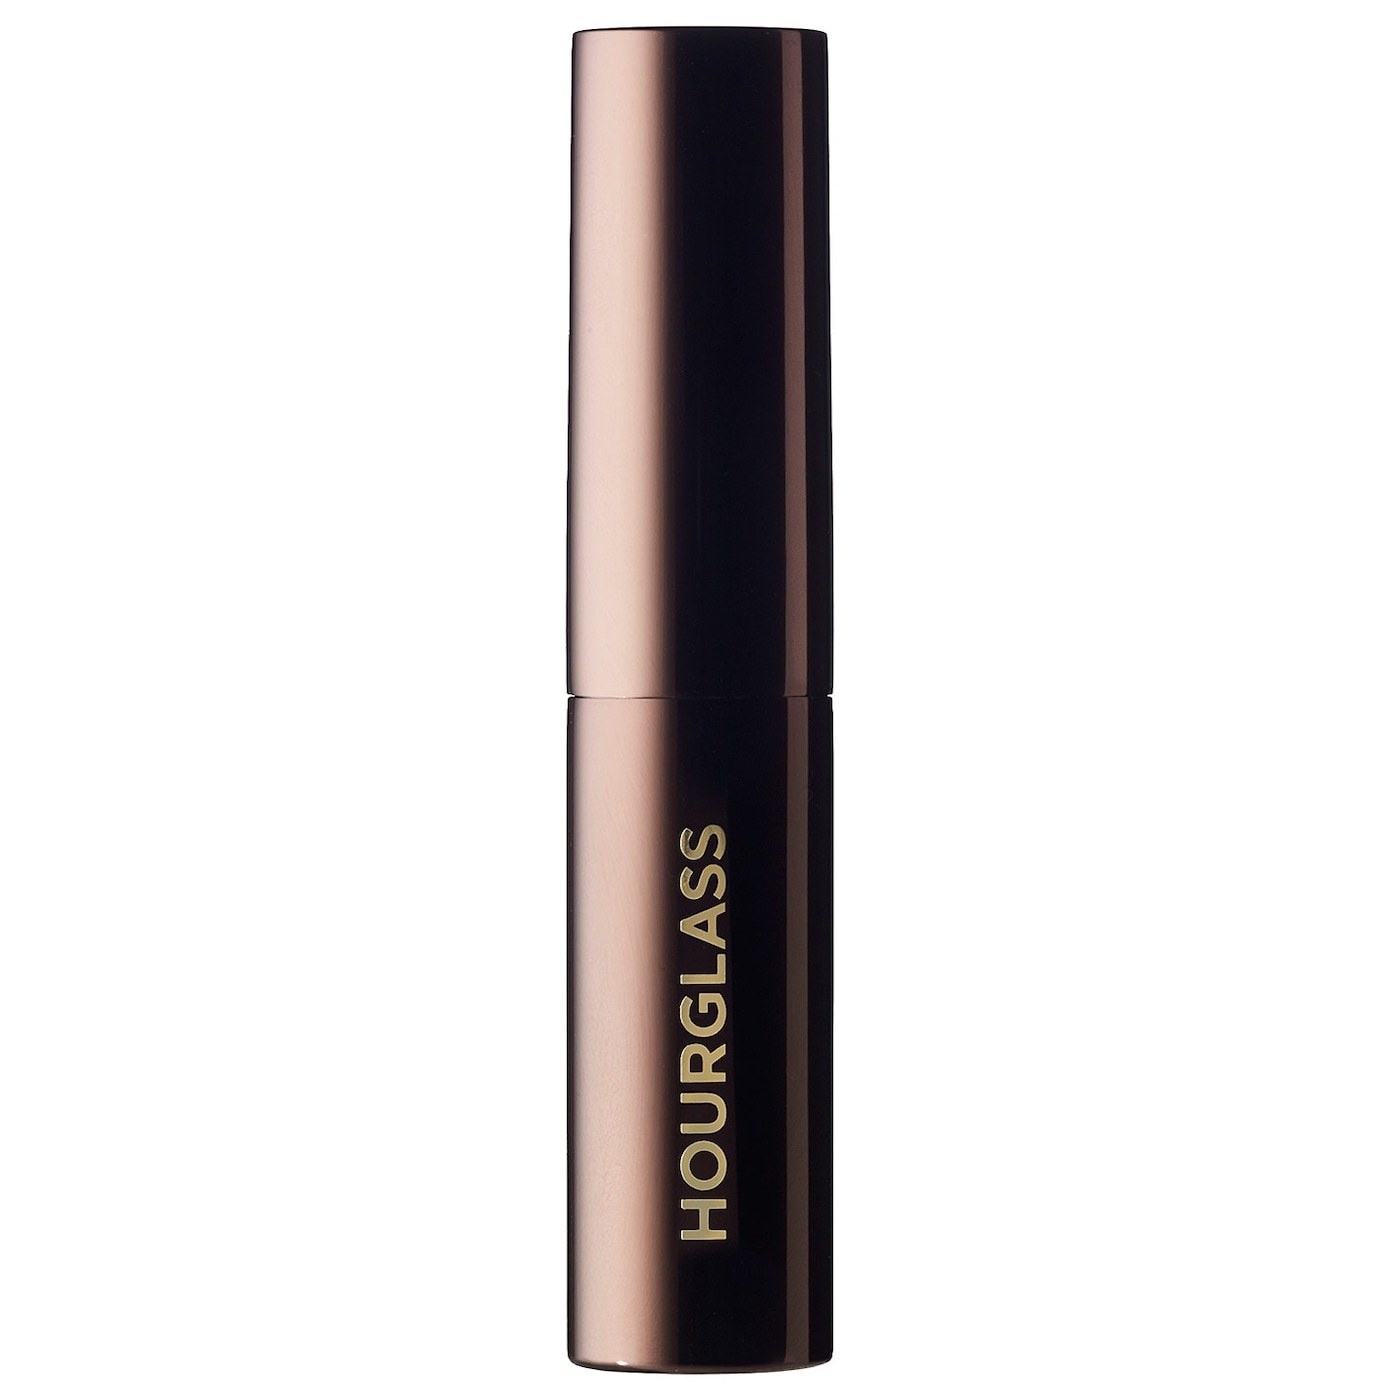 A brown hourglass concealer tube